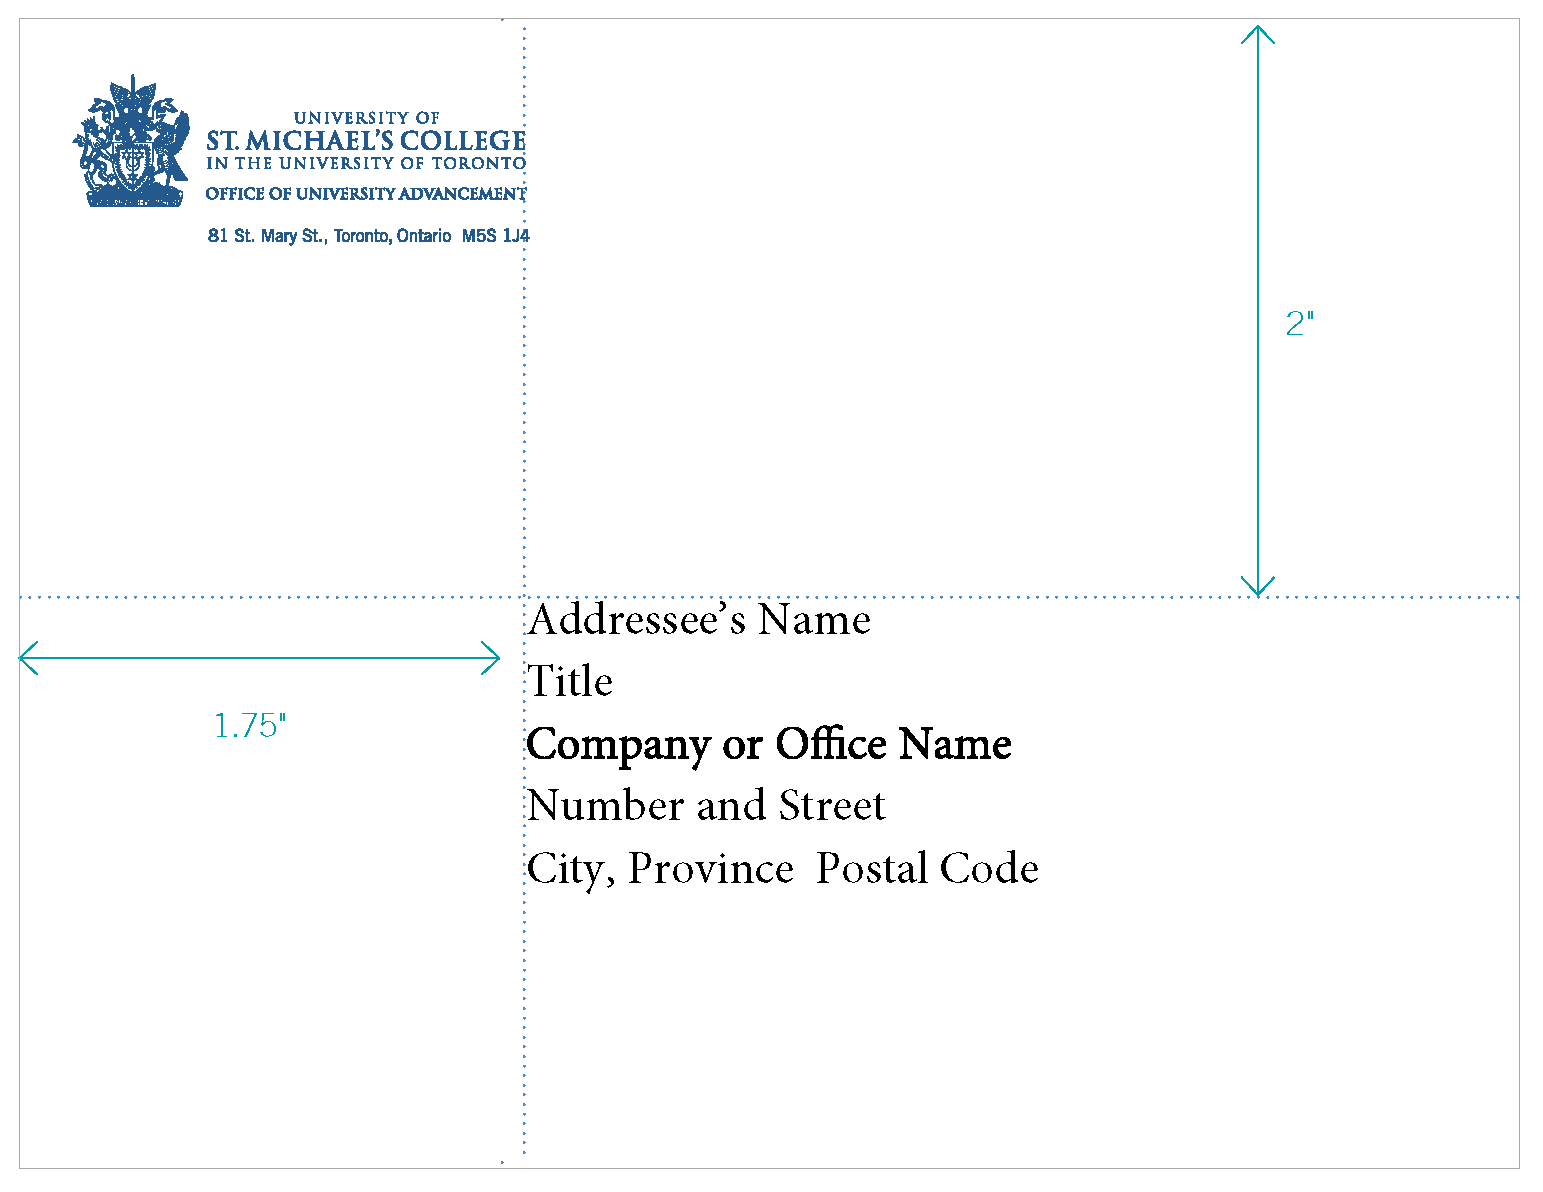 Stationery letterhead business card address label and 10 business card example address label magicingreecefo Choice Image